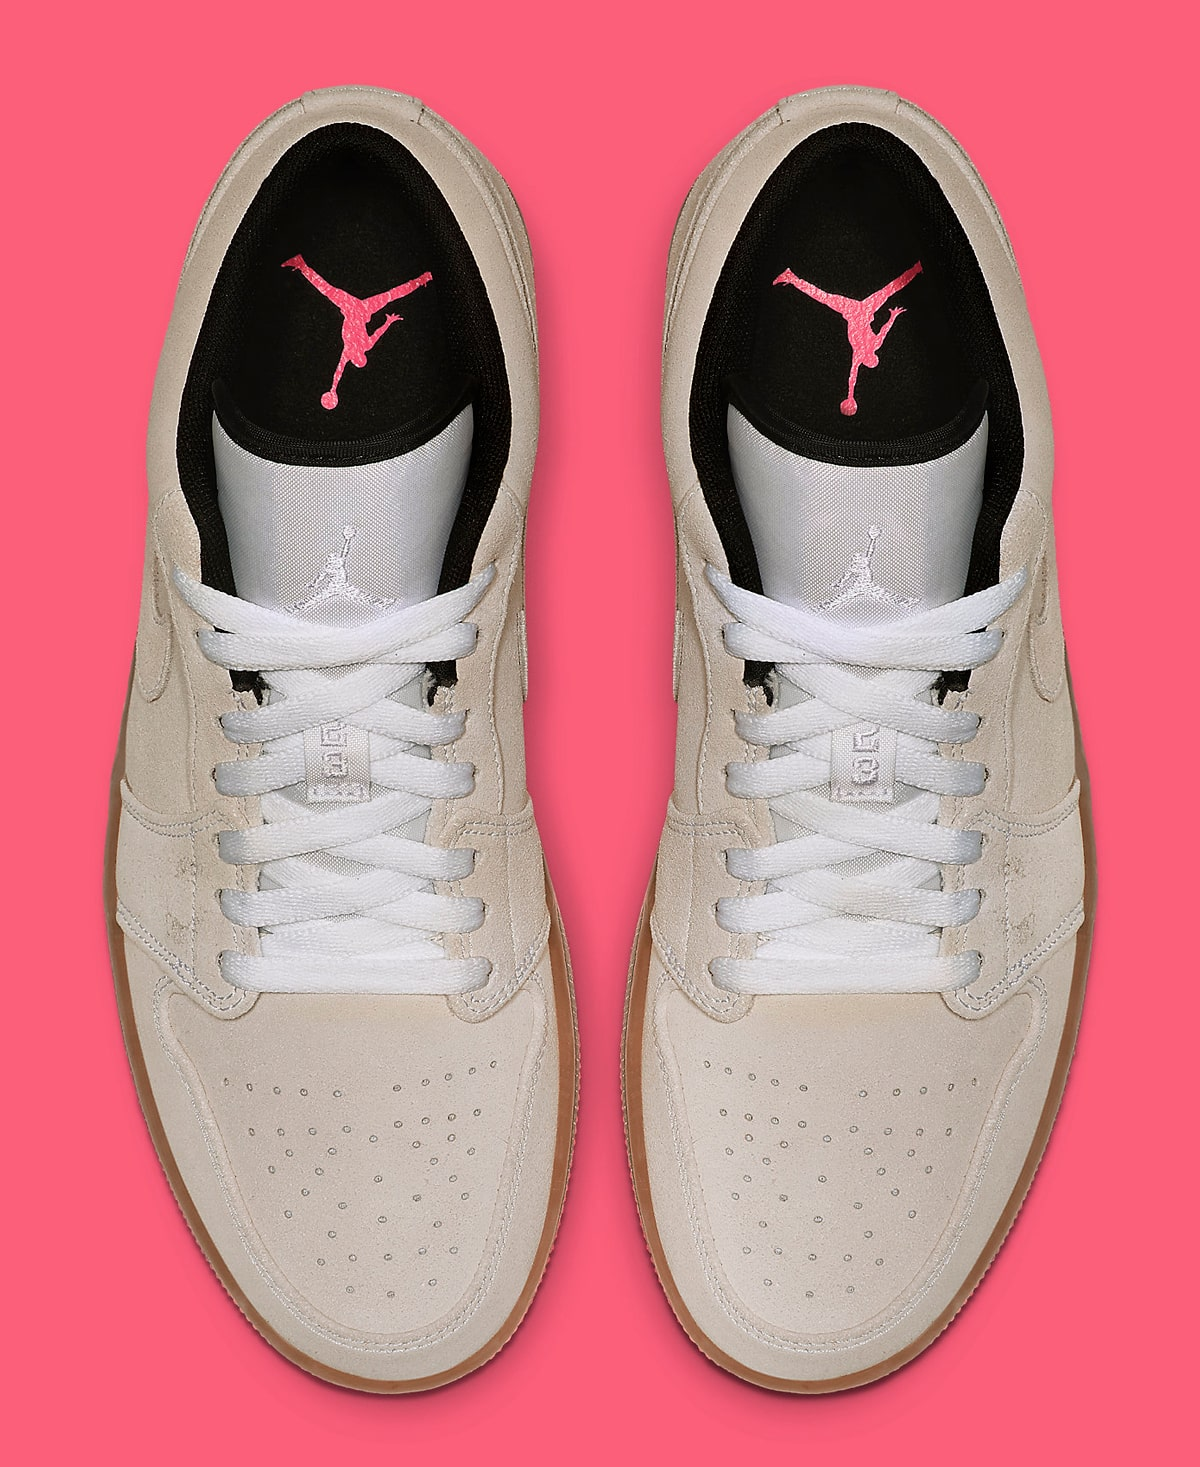 921c773a336 The Air Jordan 1 Low Arrives for Summer with Bright Pinks and Beige ...